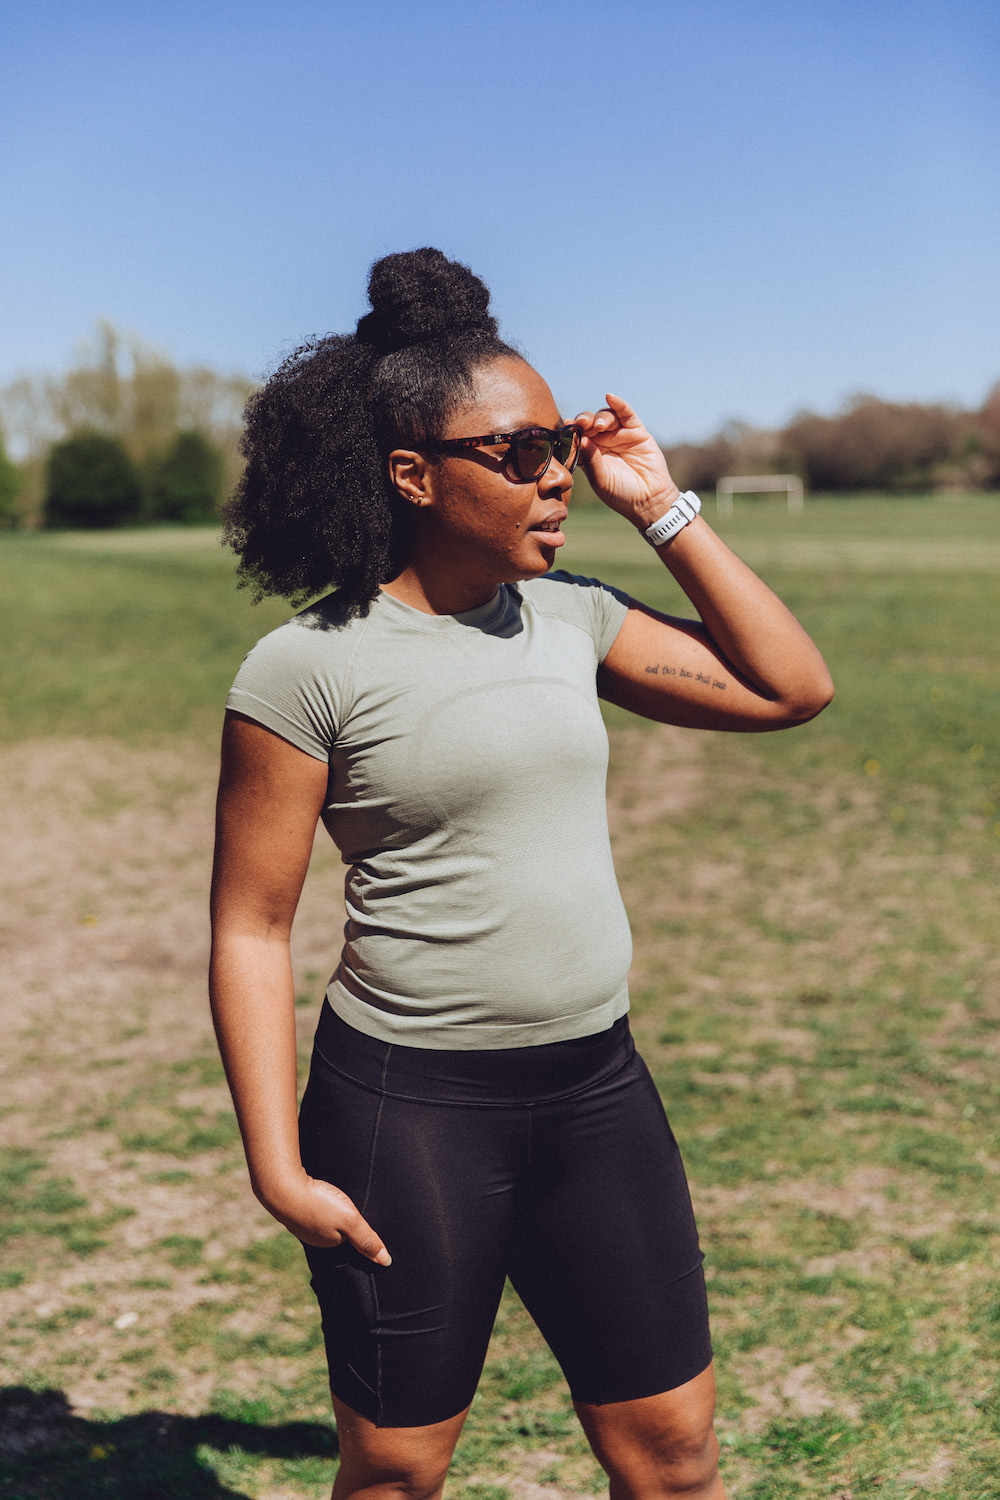 Elle wearing lululemon running top and lululemon running shorts looking into distance to the right while holding sunglasses with left hand